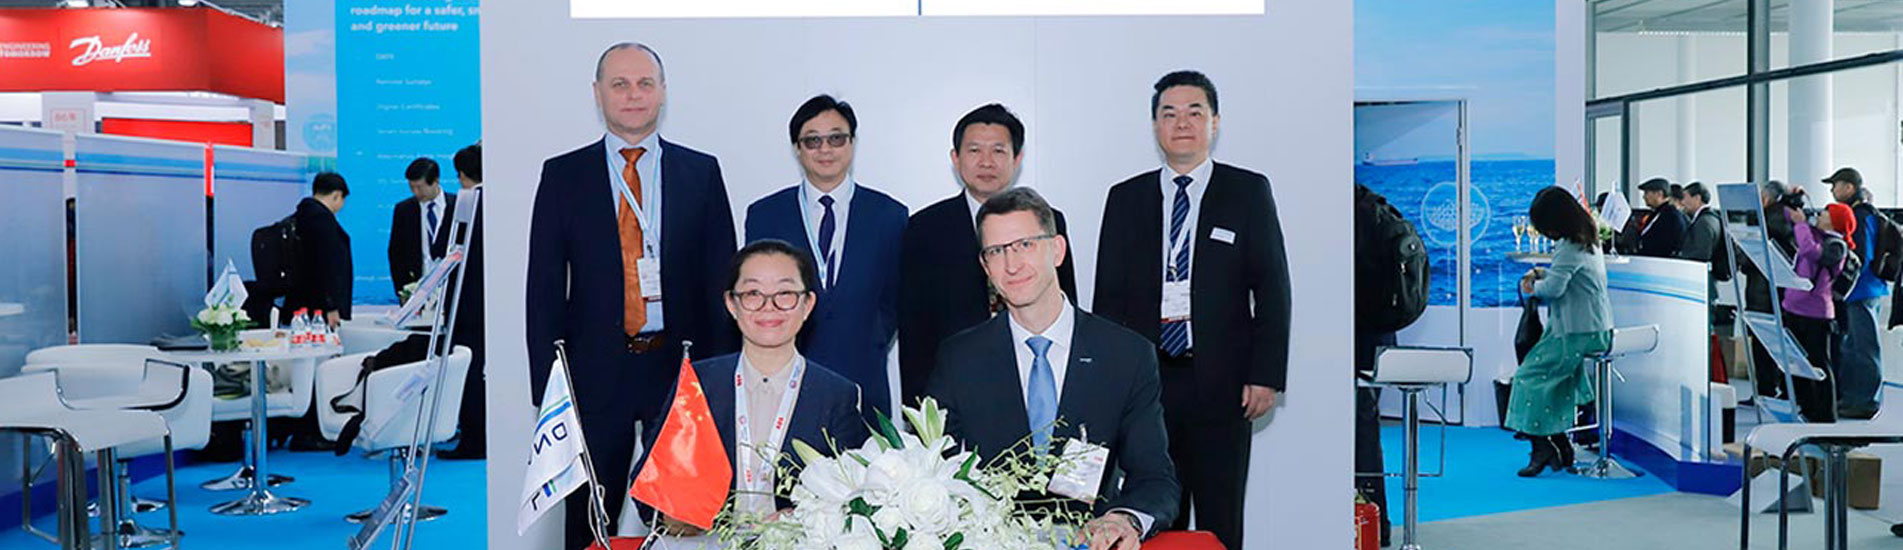 Ms Wu Ronghui, HPWS Deputy Chief Engineer, and Head of DNV GL Technical Centre China, Falk Rothe, signed the JDP agreement on a 5,000 TEU dual-fuel containership. Witnessing the signing ceremony (back, from left): Boris Bondarenko, DNV GL Area Manager for China South; Vincent Lee, DNV GL Regional Business Development Manager; Wang Yi, HPWS Commission Director for Science and Technology, and Eric Wang, Key Account Manager for DNV GL Area China South